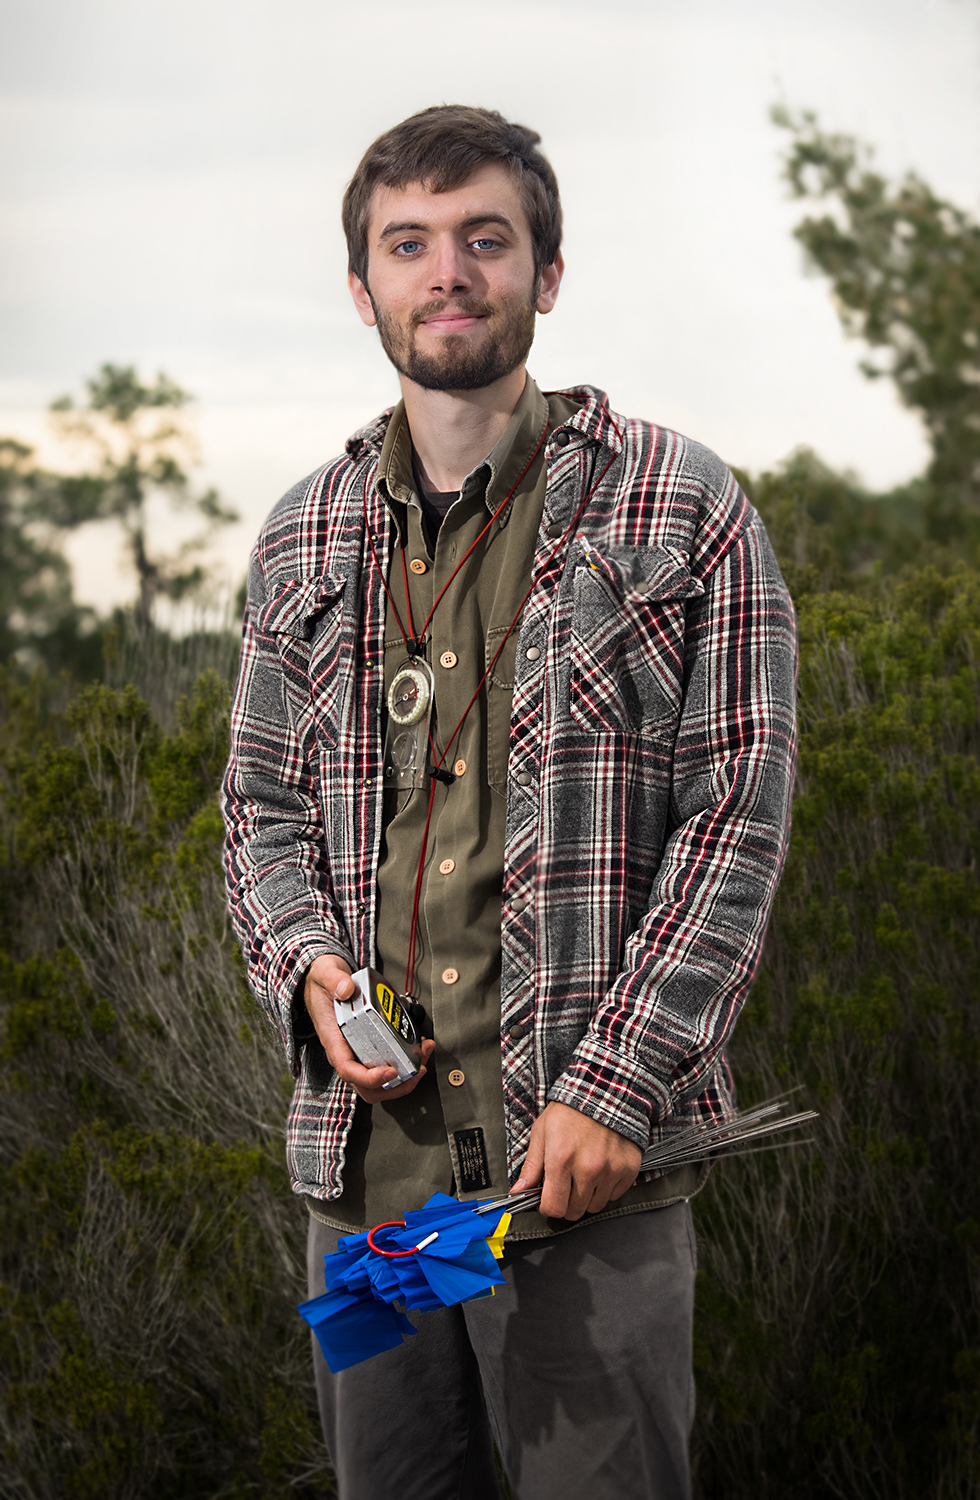 Brian Josey Plant Ecology Research Intern Archbold Biological Station 2016/1/14